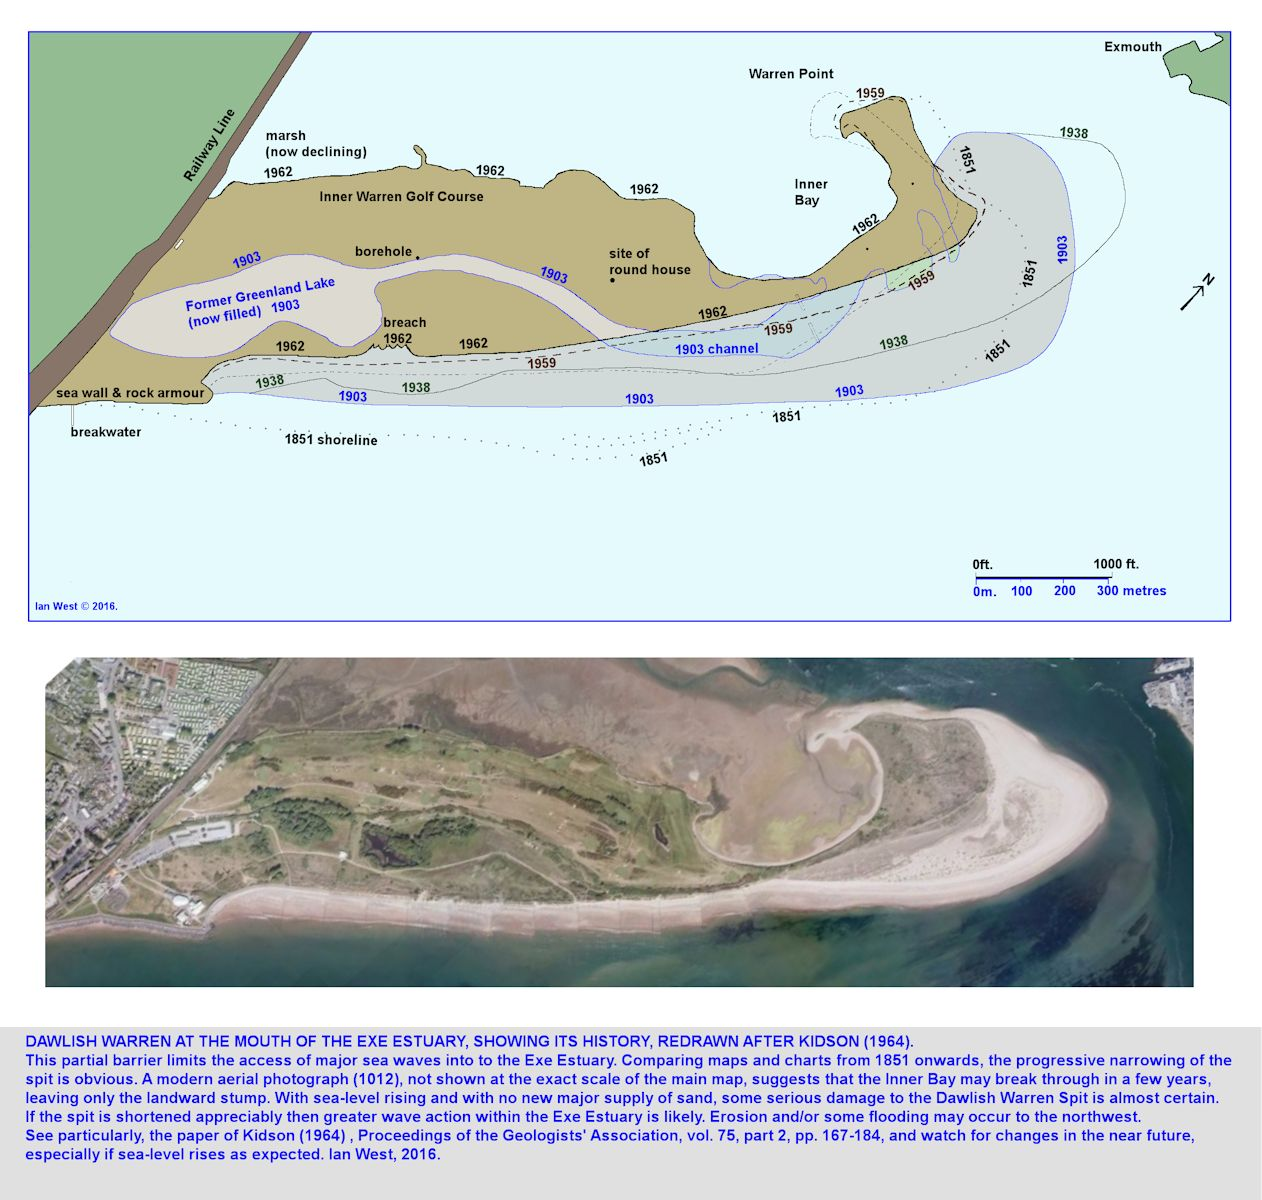 History of Changes to the sand spit of Dawlish Warren, Devon, based on the studies of Kidson (1964), with a modern aerial photograph comparison